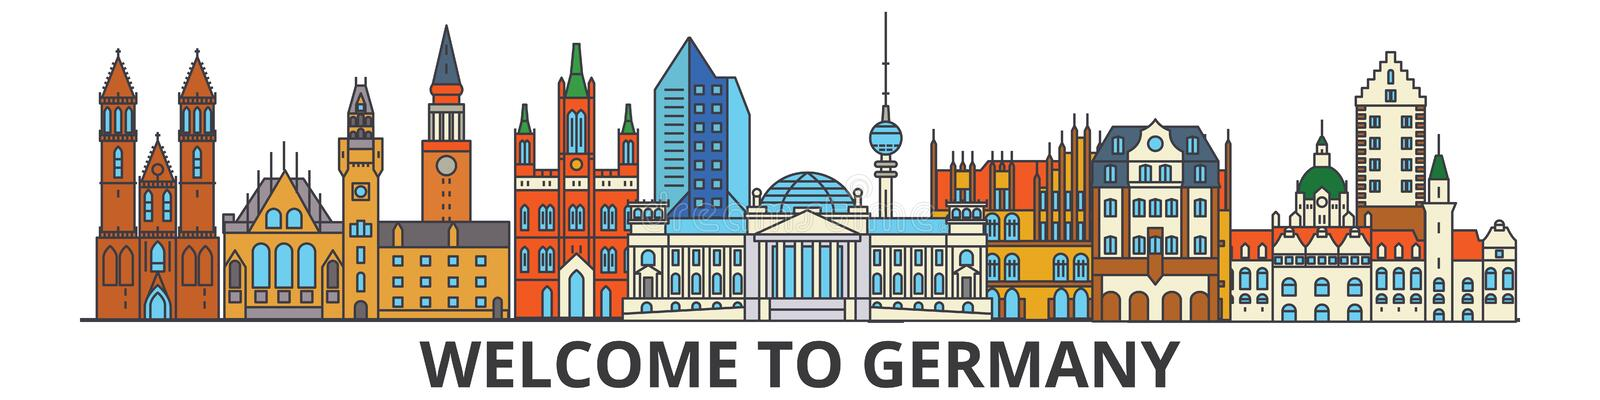 Germany outline skyline, german flat thin line icons, landmarks, illustrations. Germany cityscape, german travel city royalty free illustration